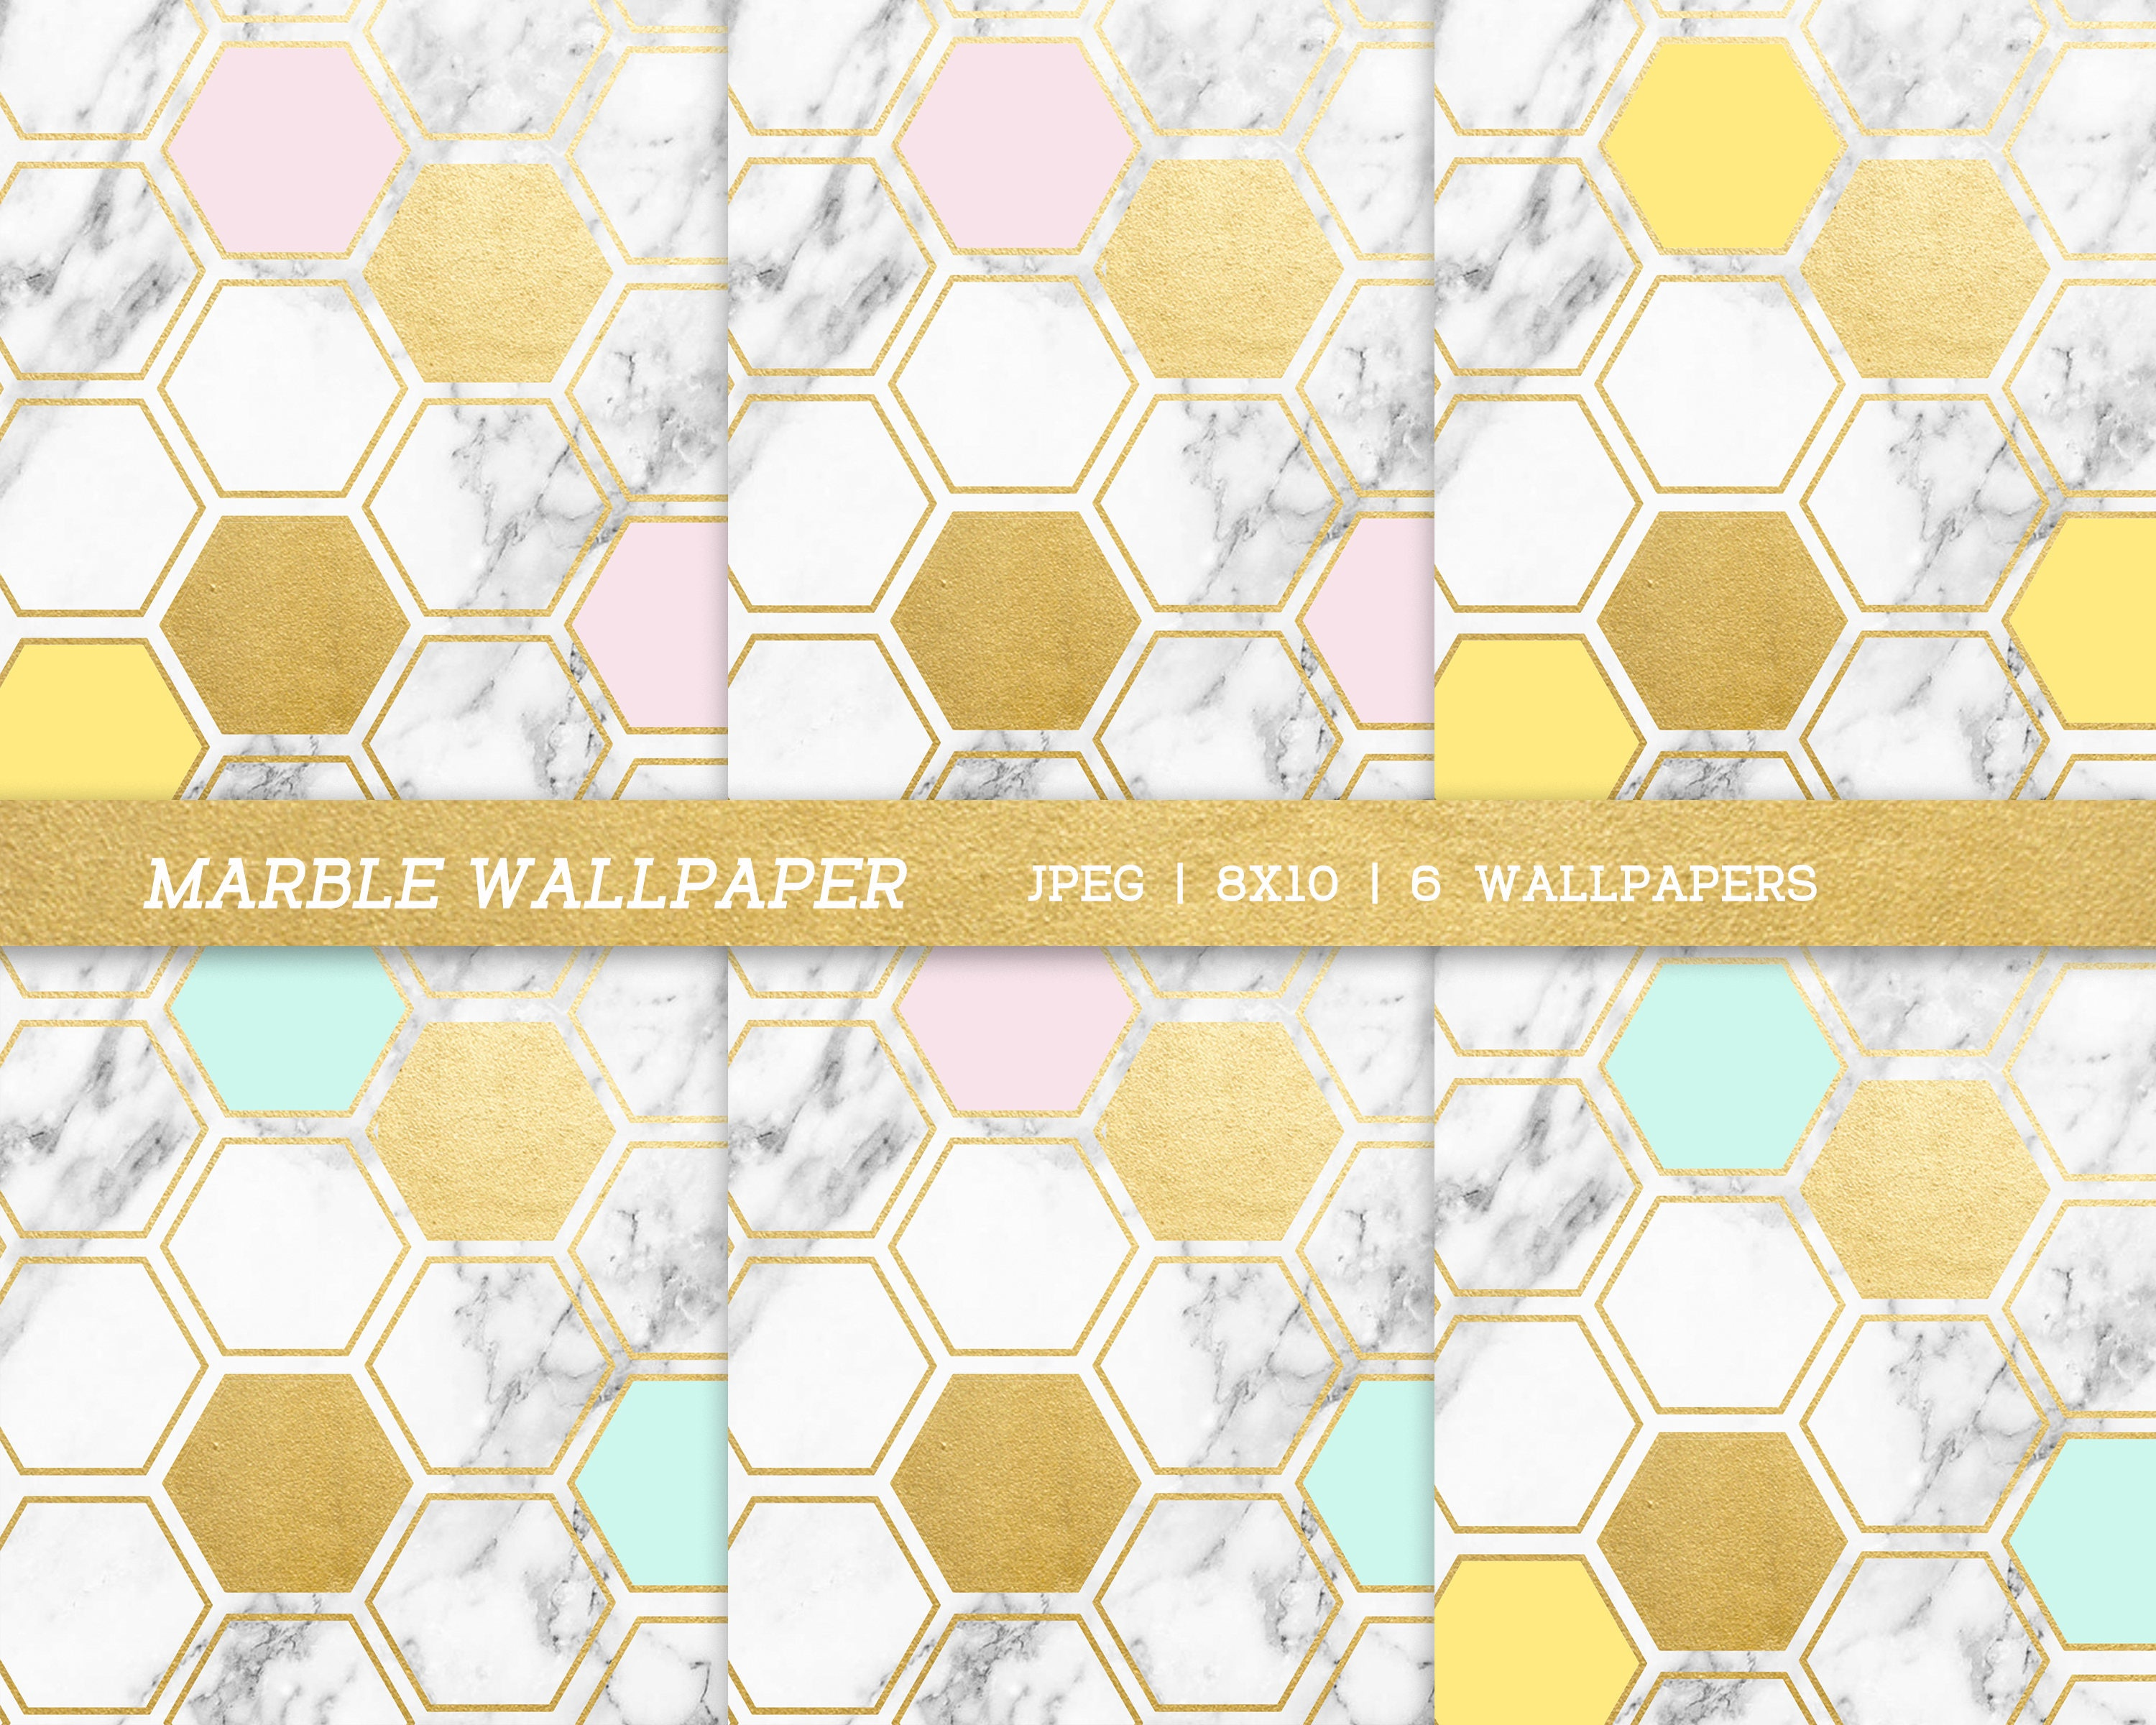 Download Wallpaper High Resolution Marble - il_fullxfull  You Should Have_528212.jpg?version\u003d0